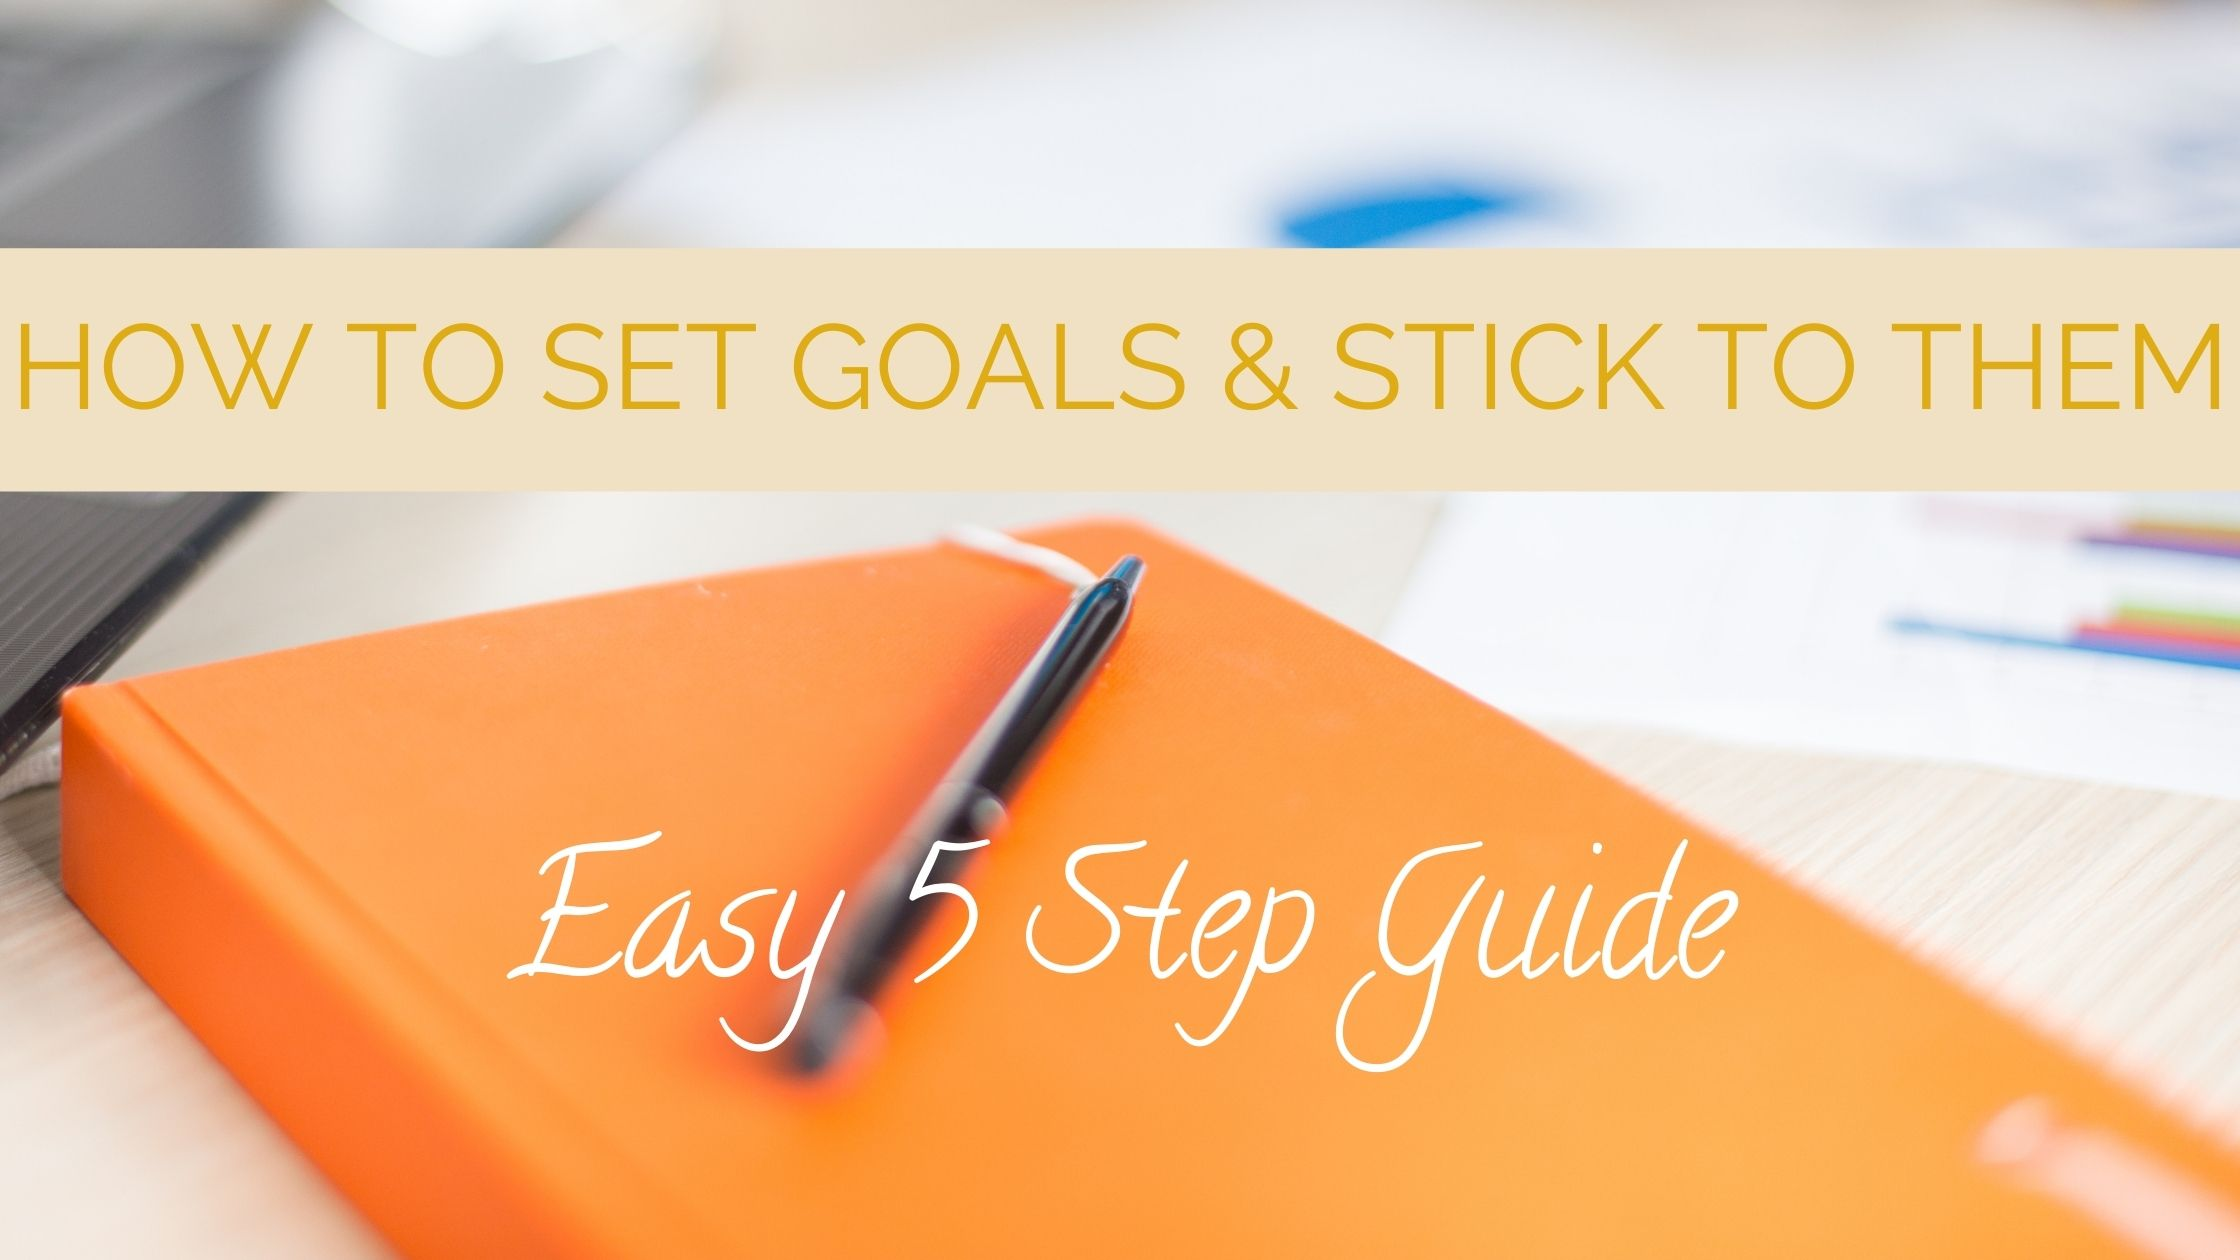 How to set goals and stick with them. Easy 5 step guide